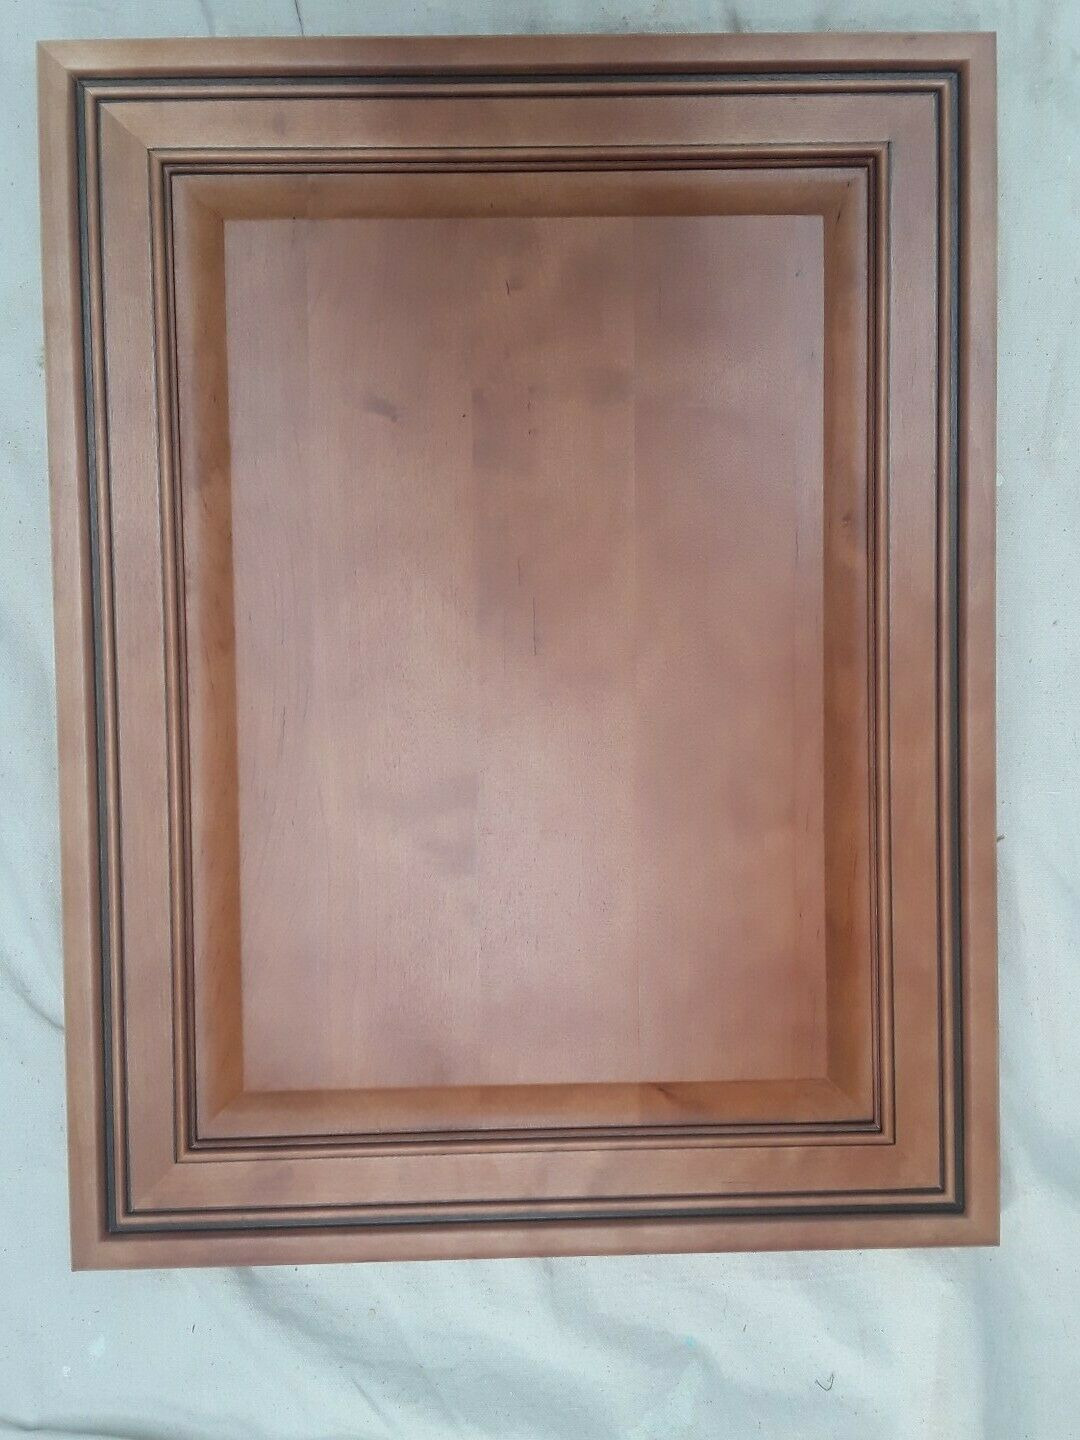 Reface Cabinet Doors Awesome Cabinet Doors Reface Replace Maple solid Wood Raised Panel Kitchen Bath No Mdf